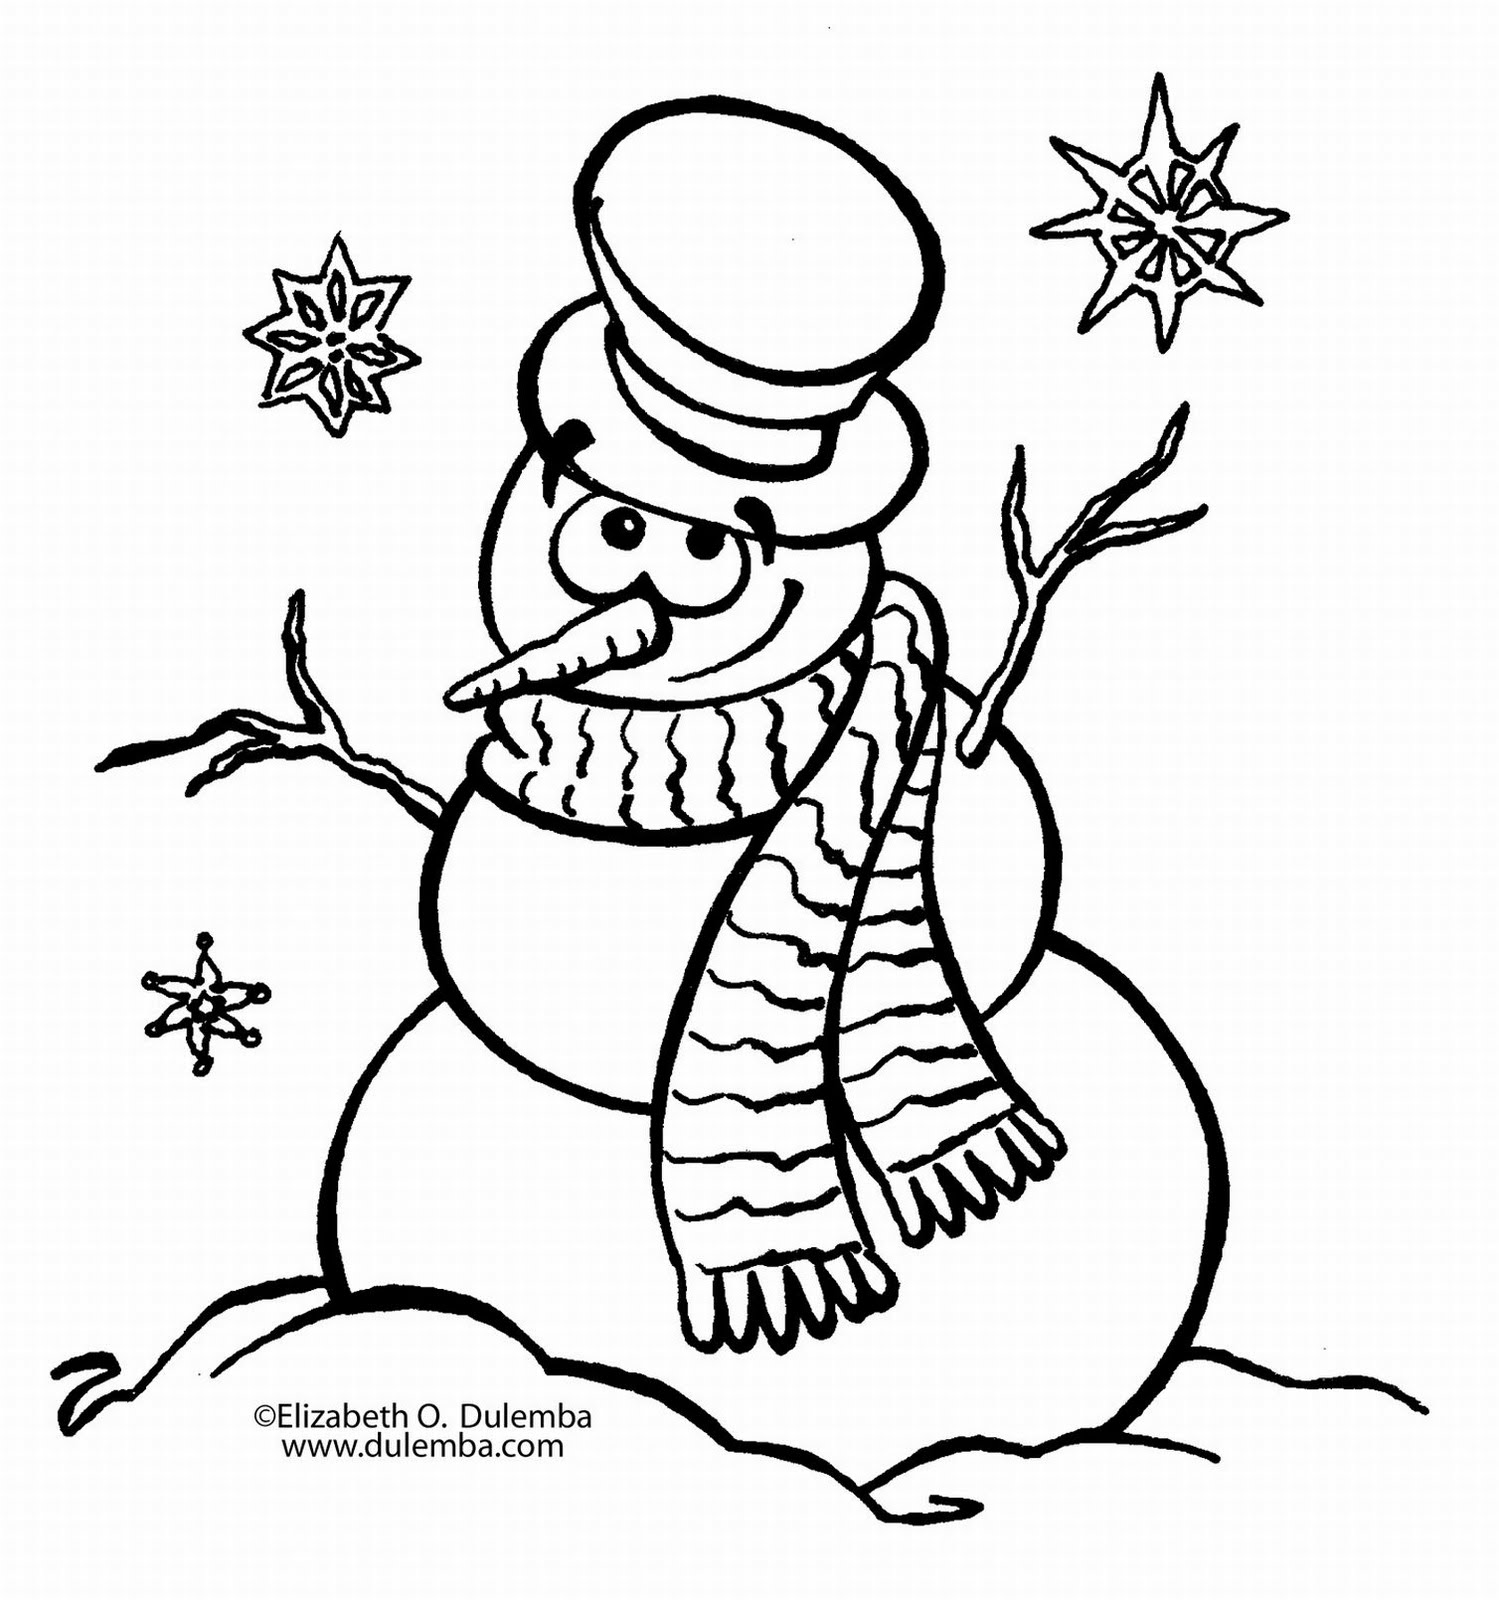 the snowman coloring pages - photo#22